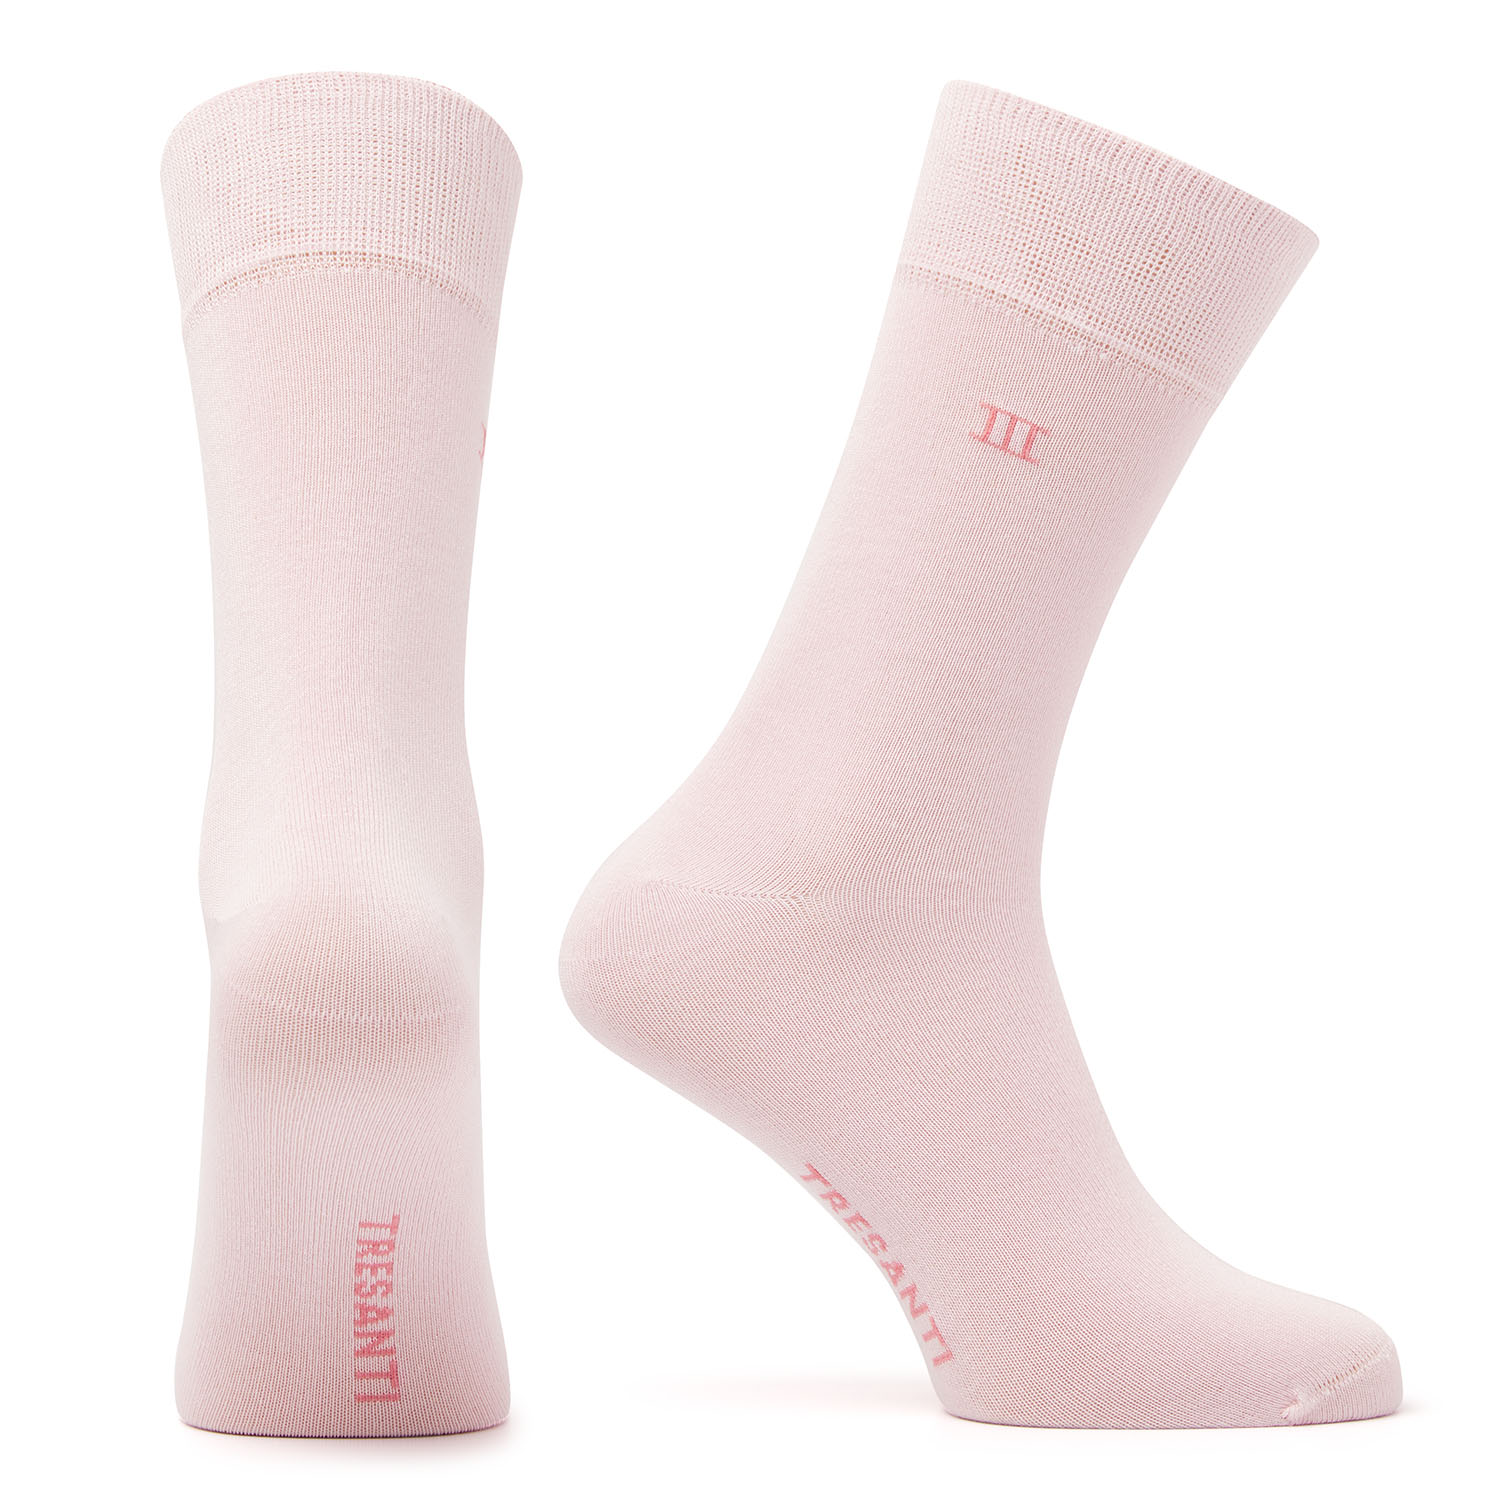 Bamboo socks light pink